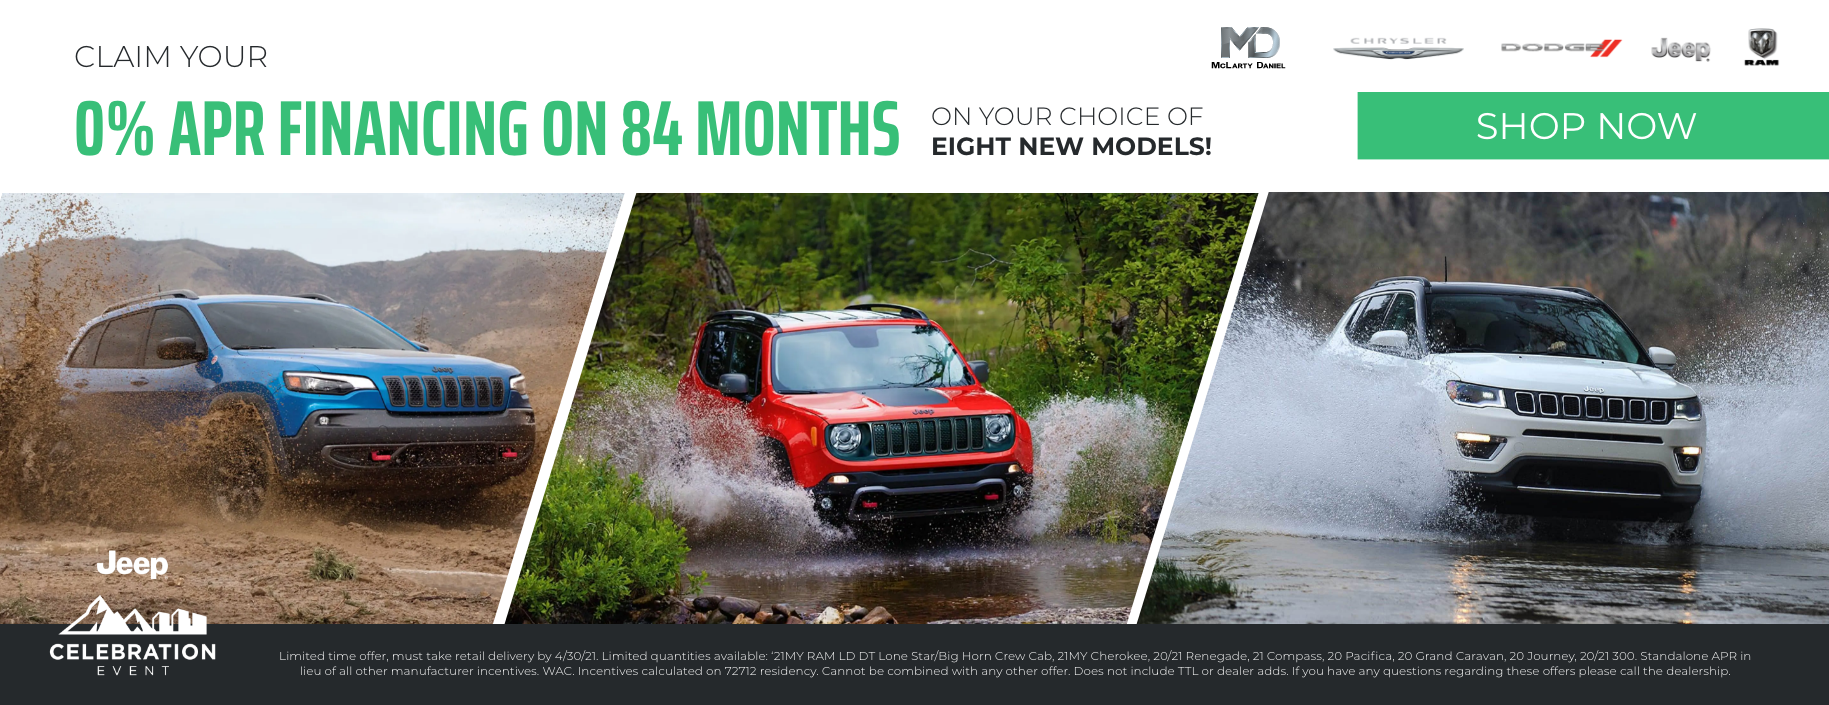 Get 0% APR for 84 months on your choice of 8 new models